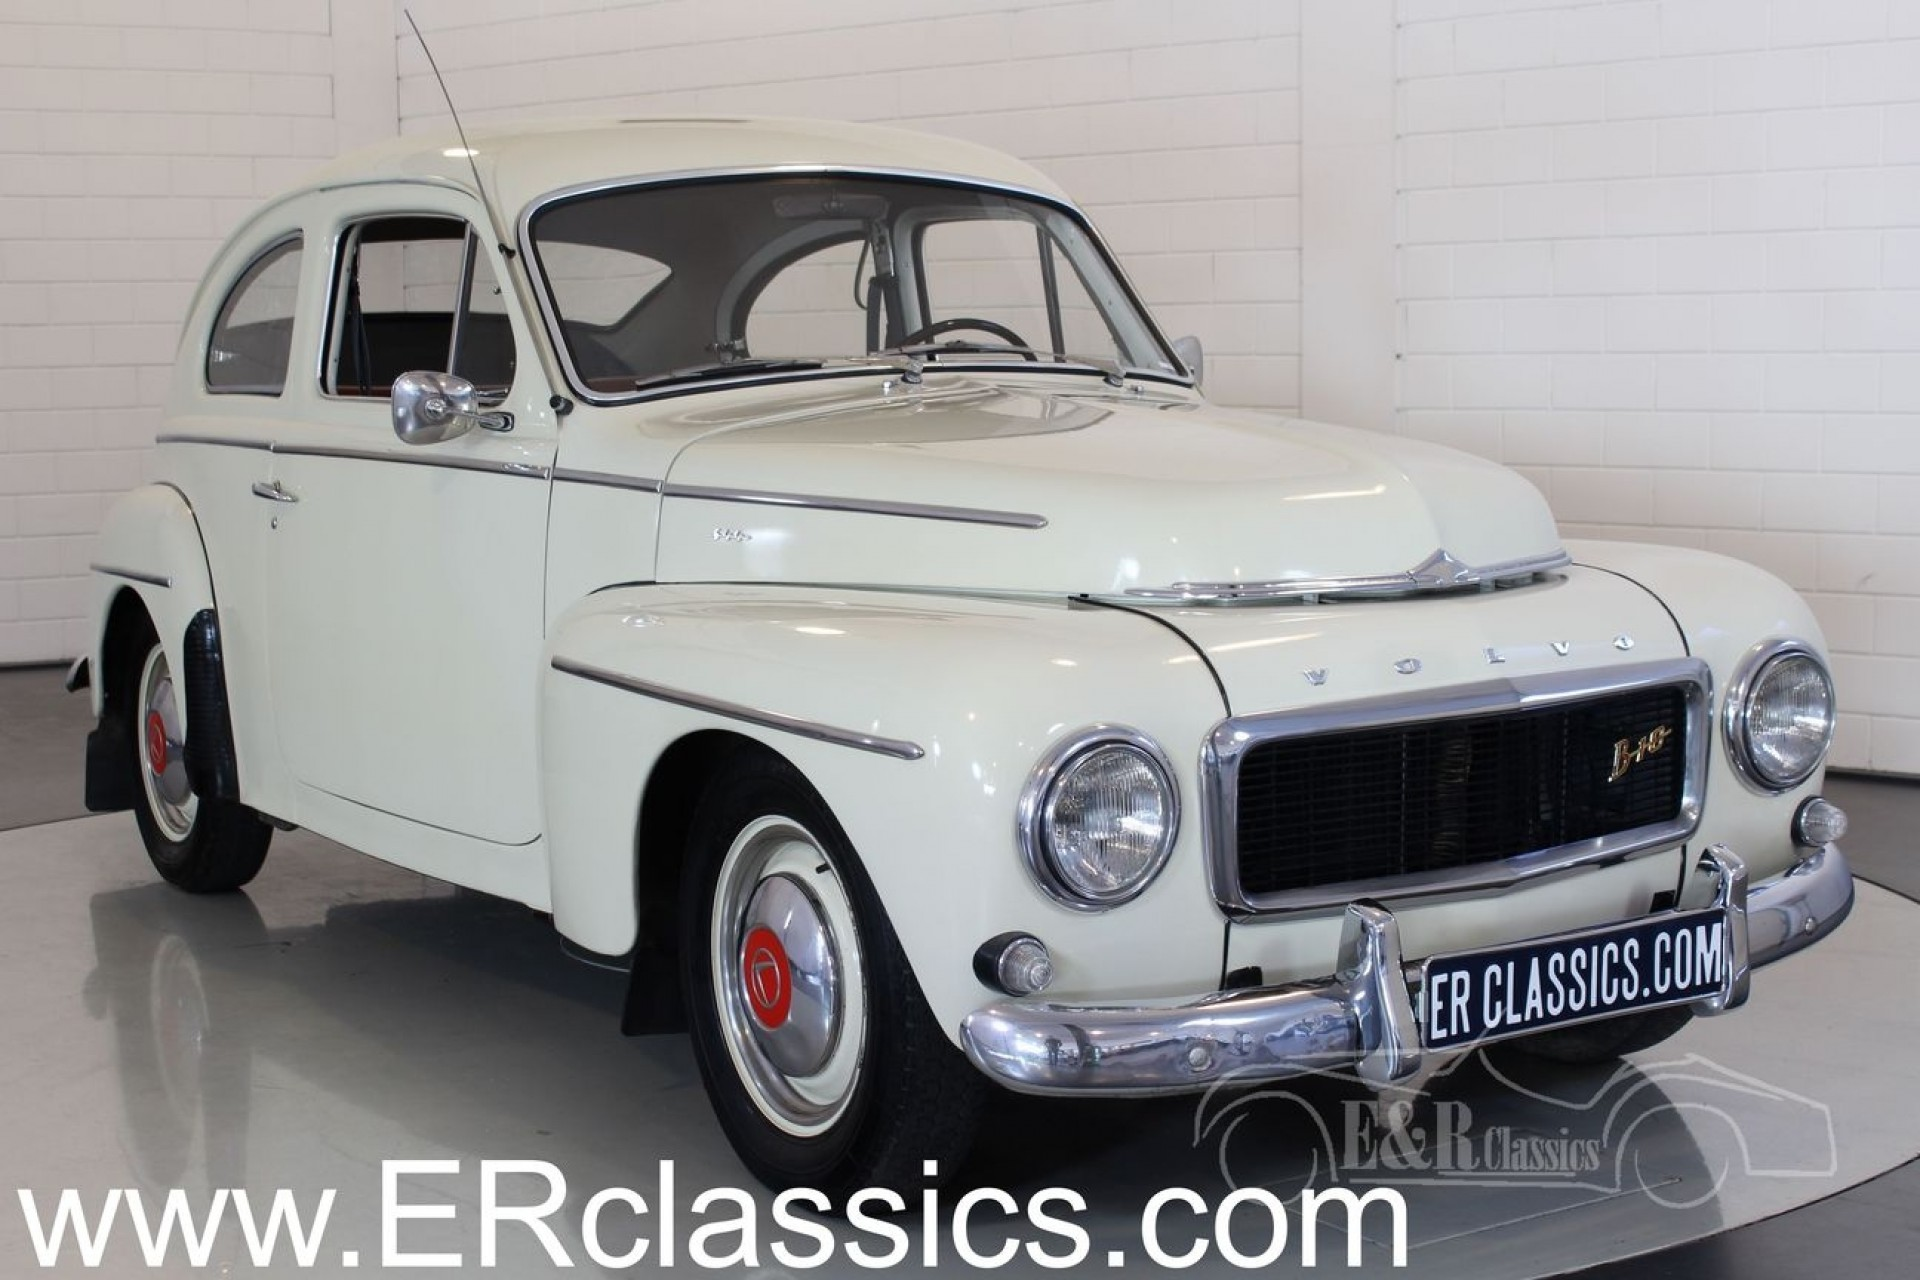 volvo pv 544 sport 1964 vendre erclassics. Black Bedroom Furniture Sets. Home Design Ideas